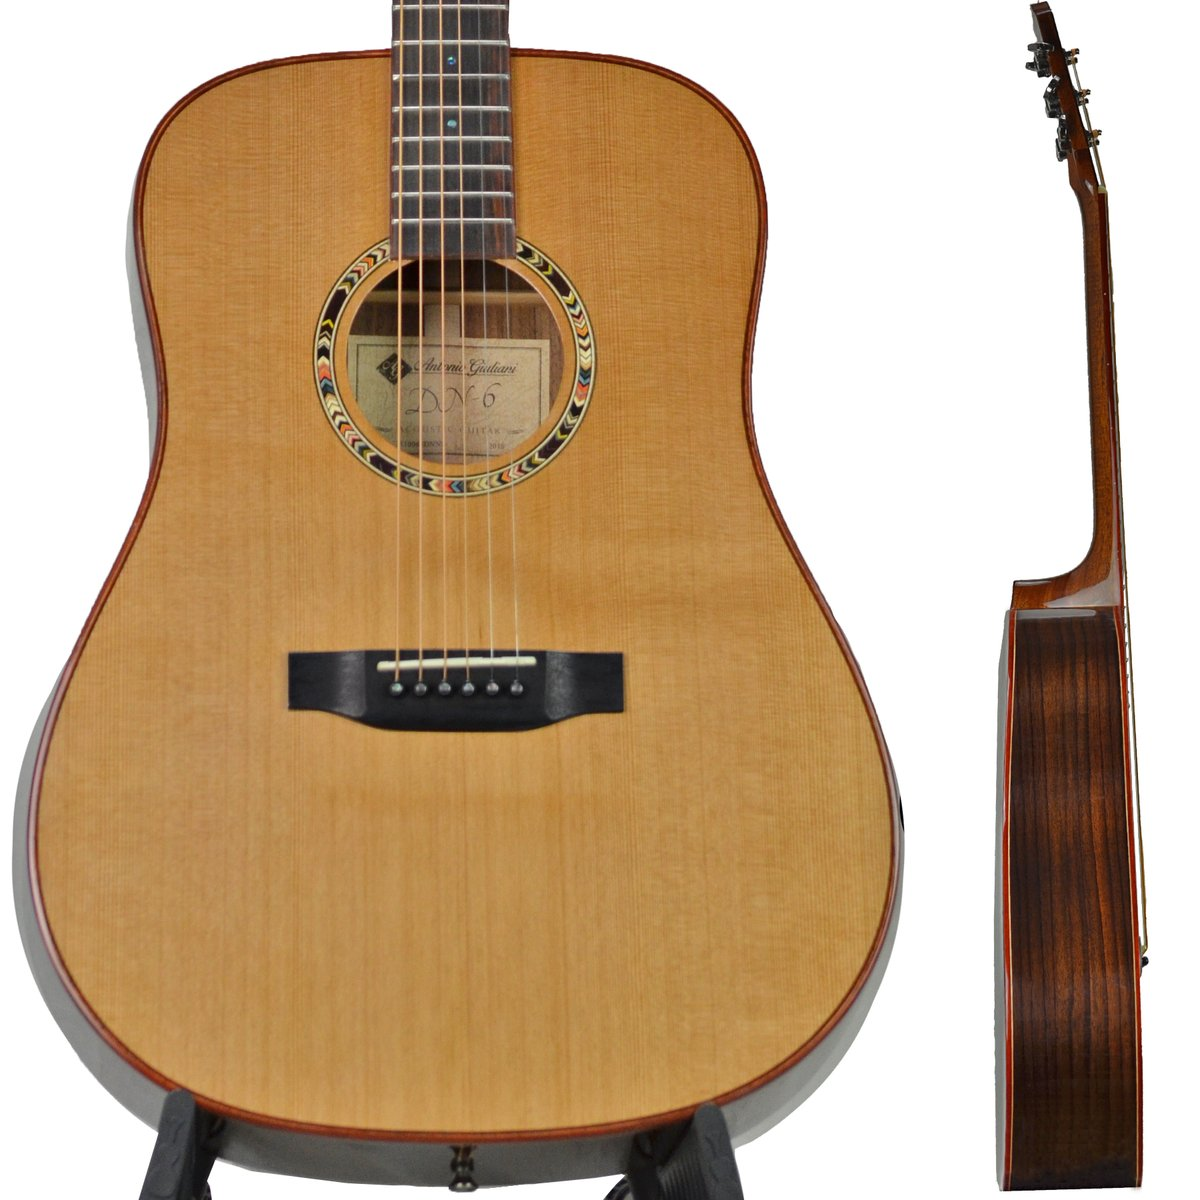 Antonio Giuliani Dreadnaught Rosewood Acoustic Guitar DN-6 Clearance Outfit in action